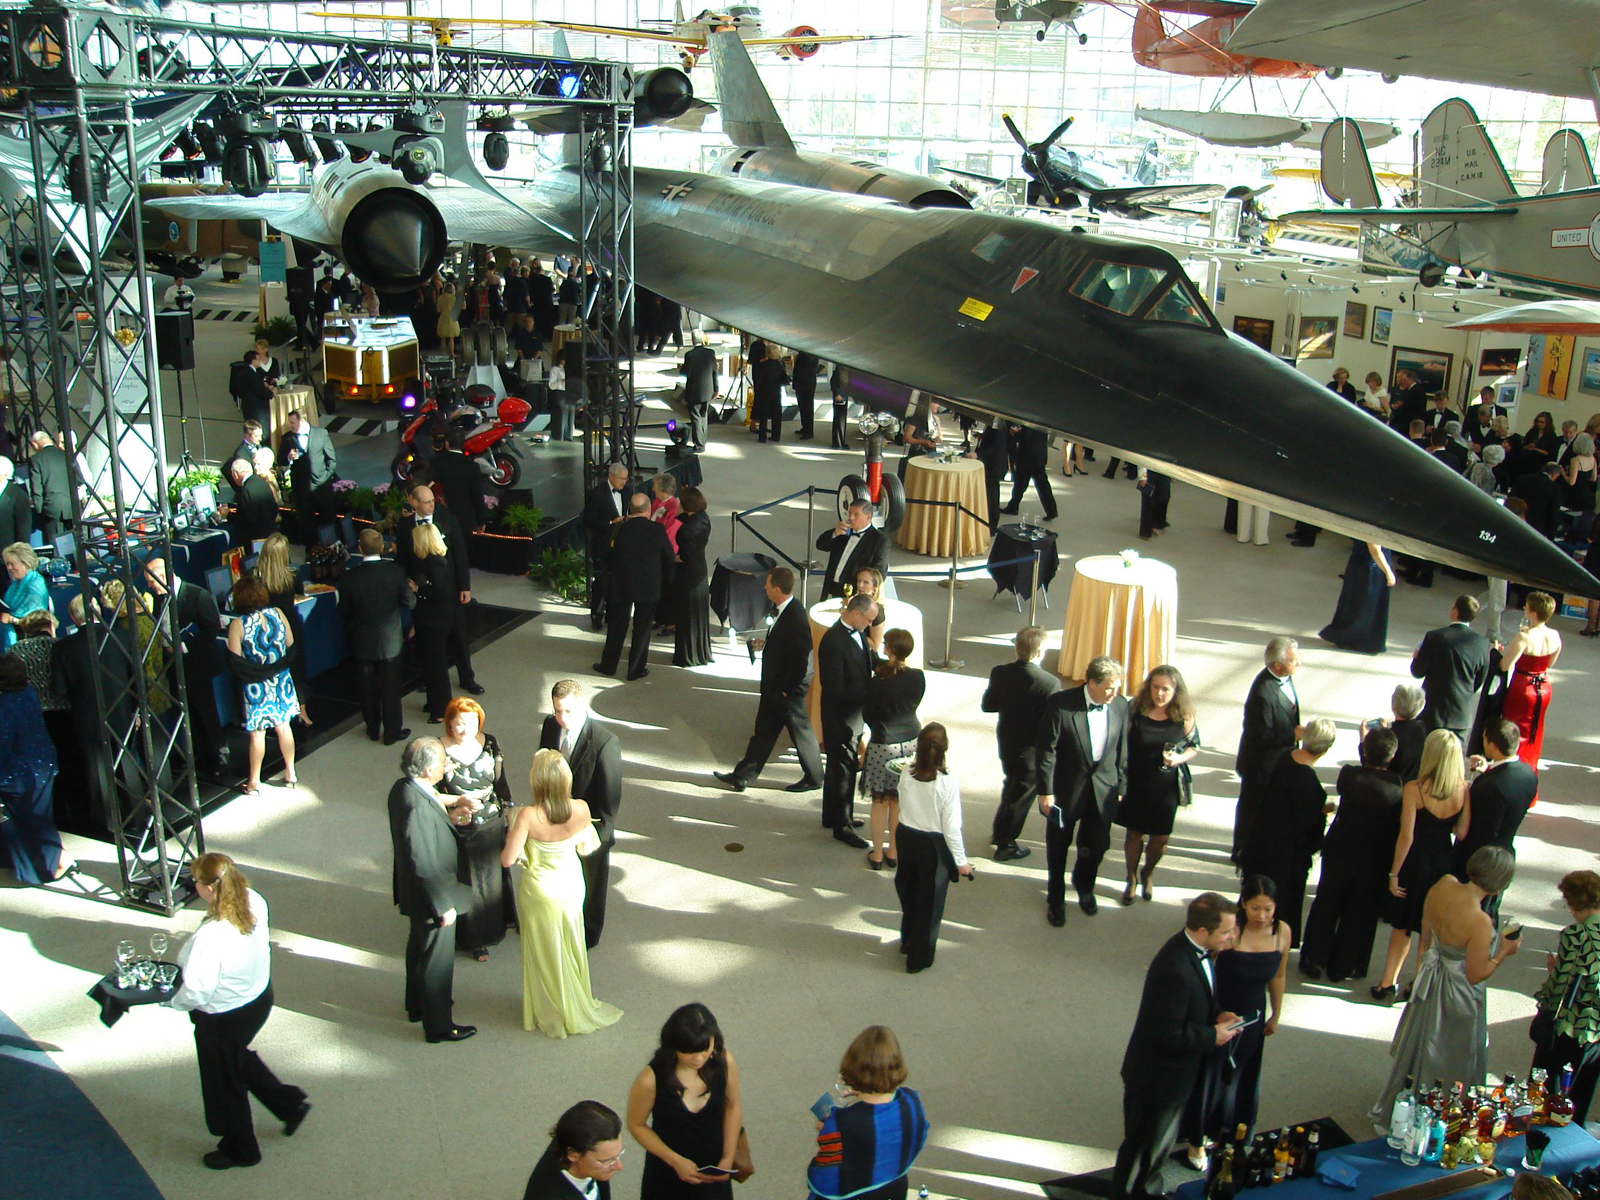 Museum of Flight Raises More Than $1.6 million at its Annual Gala for Education